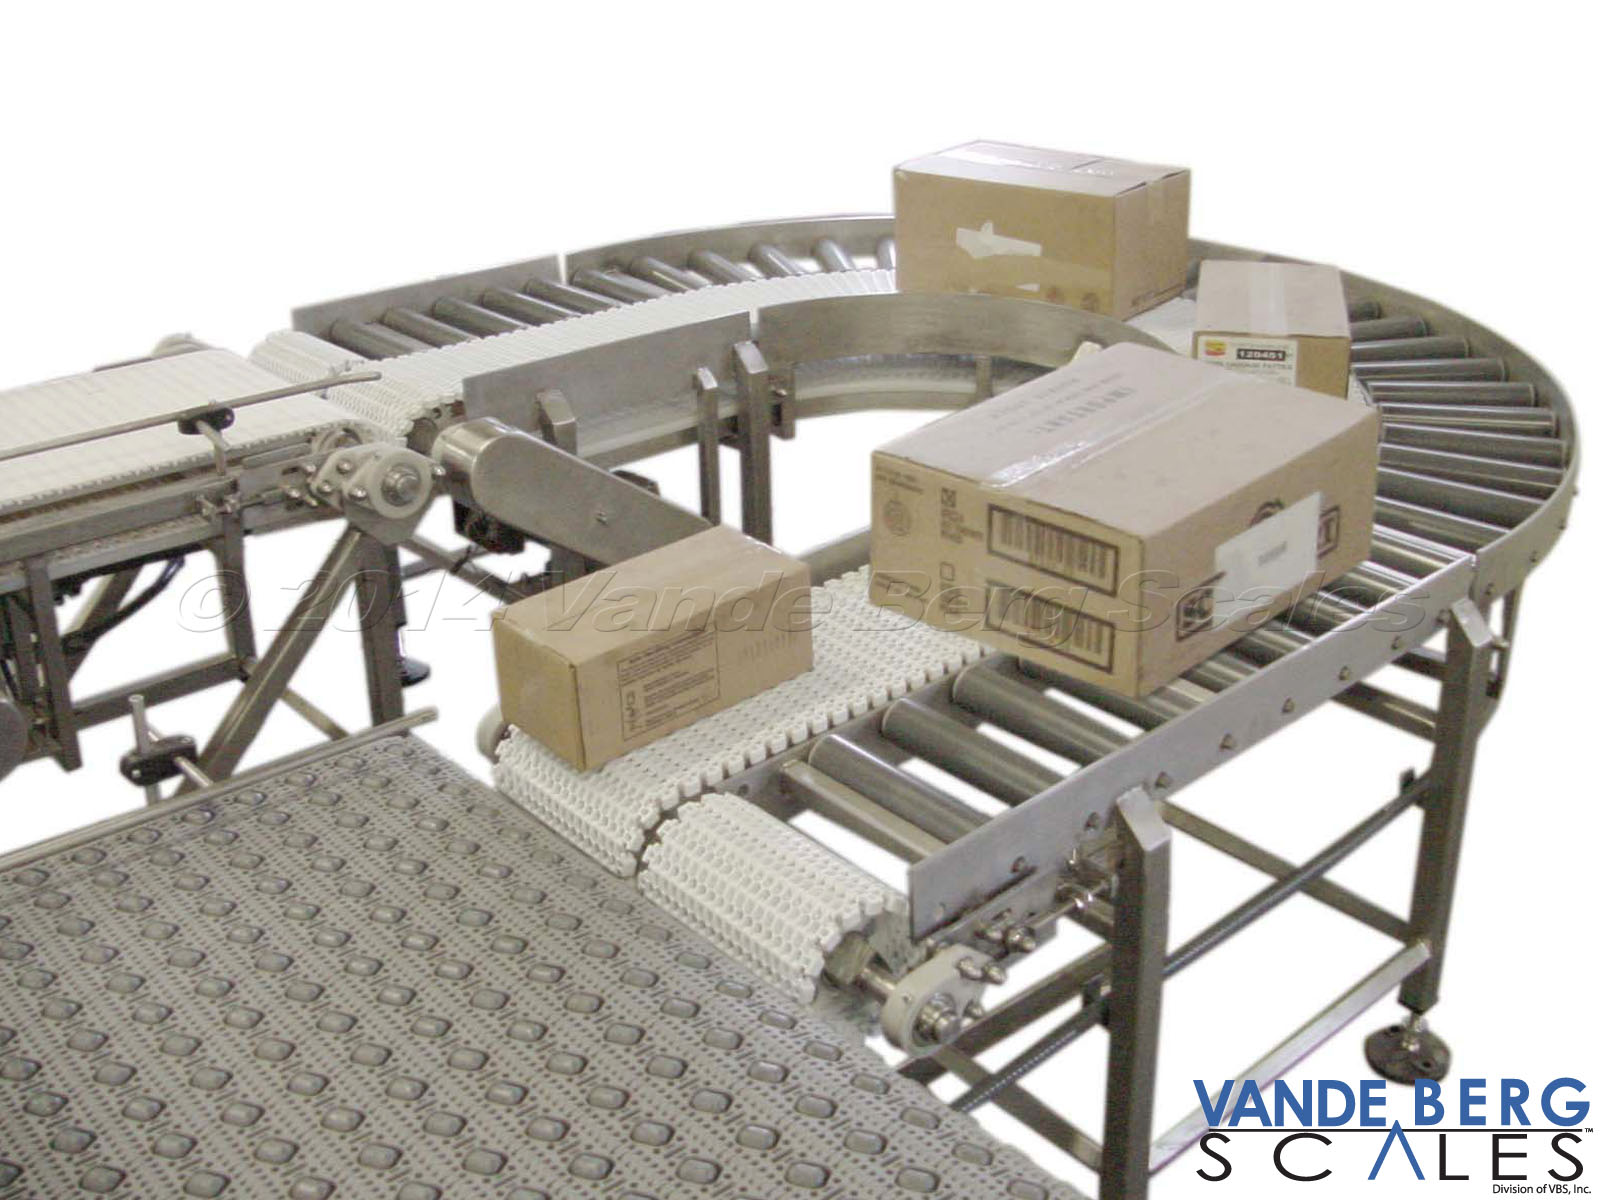 Radius Conveyor with side rails and outer non-powered rollers for tightly turning and accumulating corrugated boxes without reorientation problems in a very compact area.